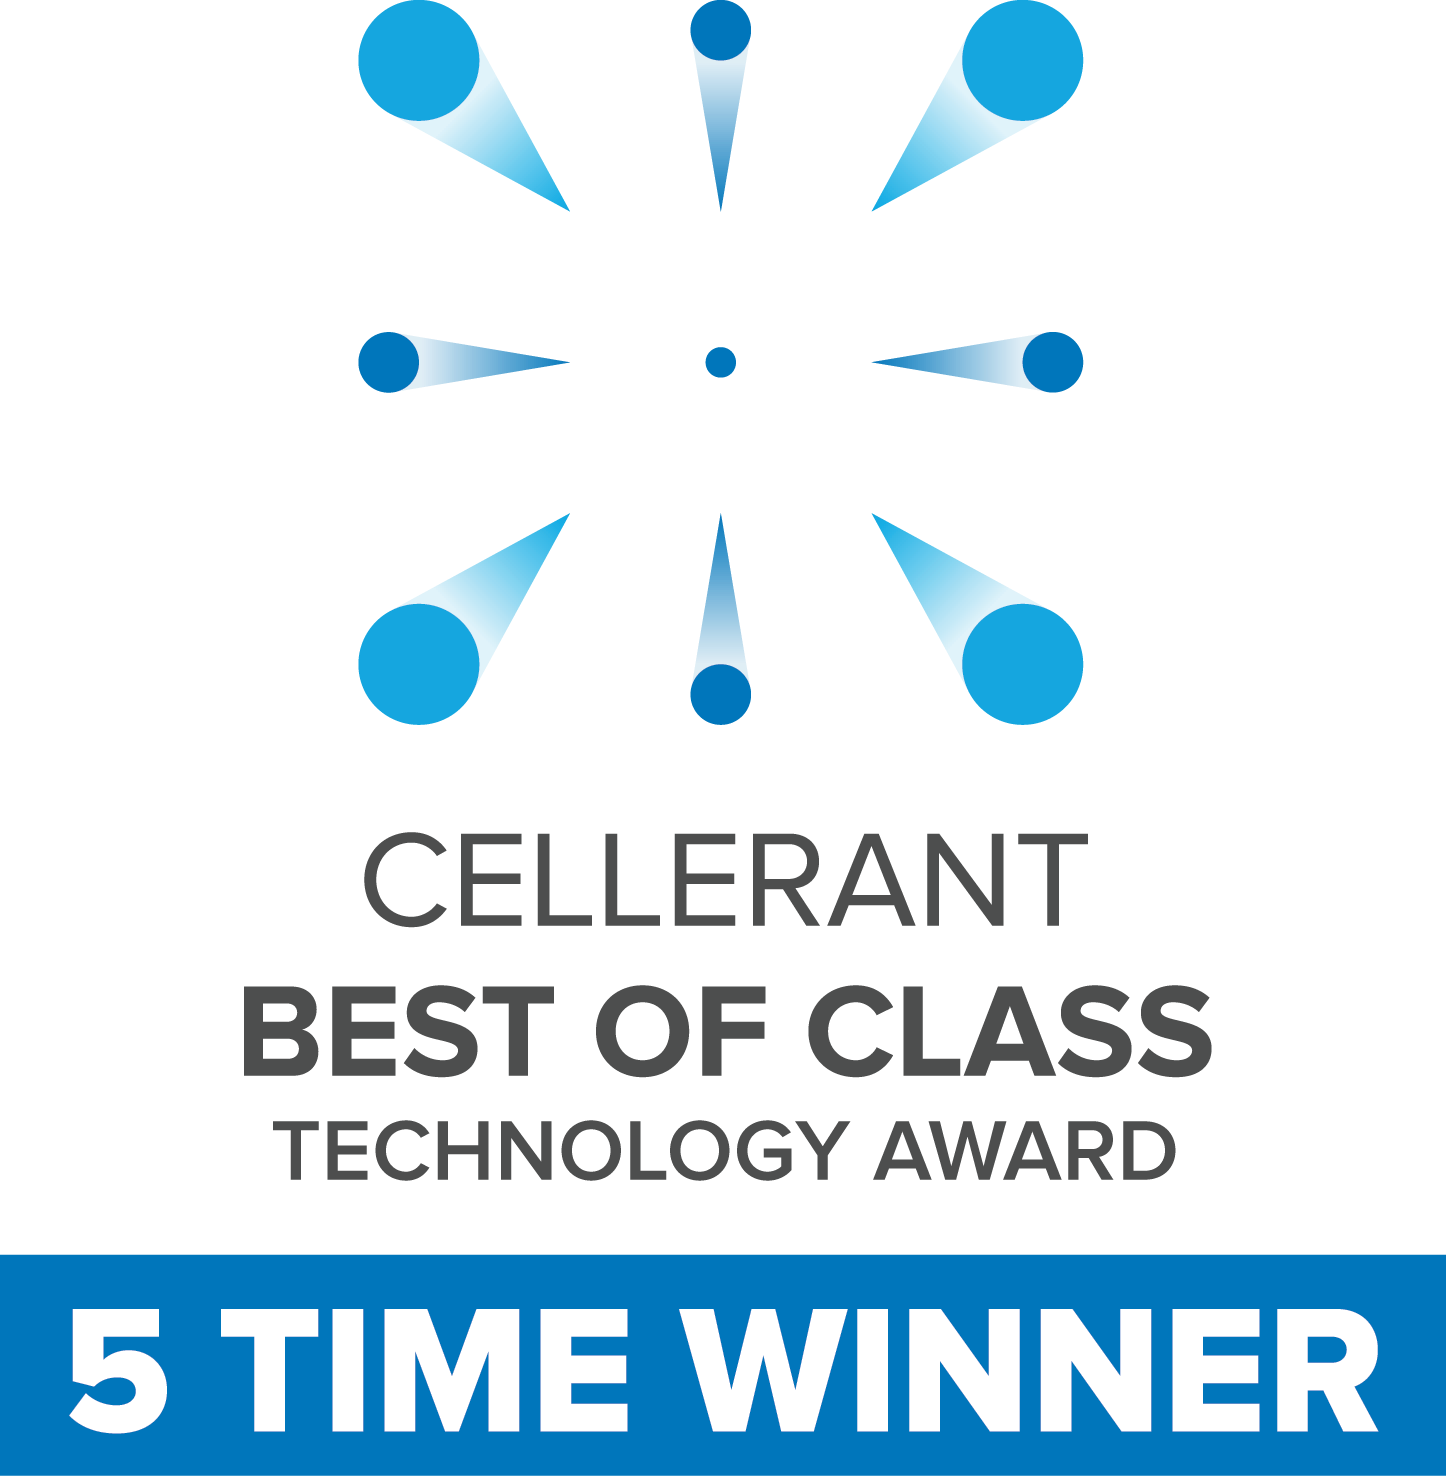 2019 Cellerant Award - 5 Time Winner